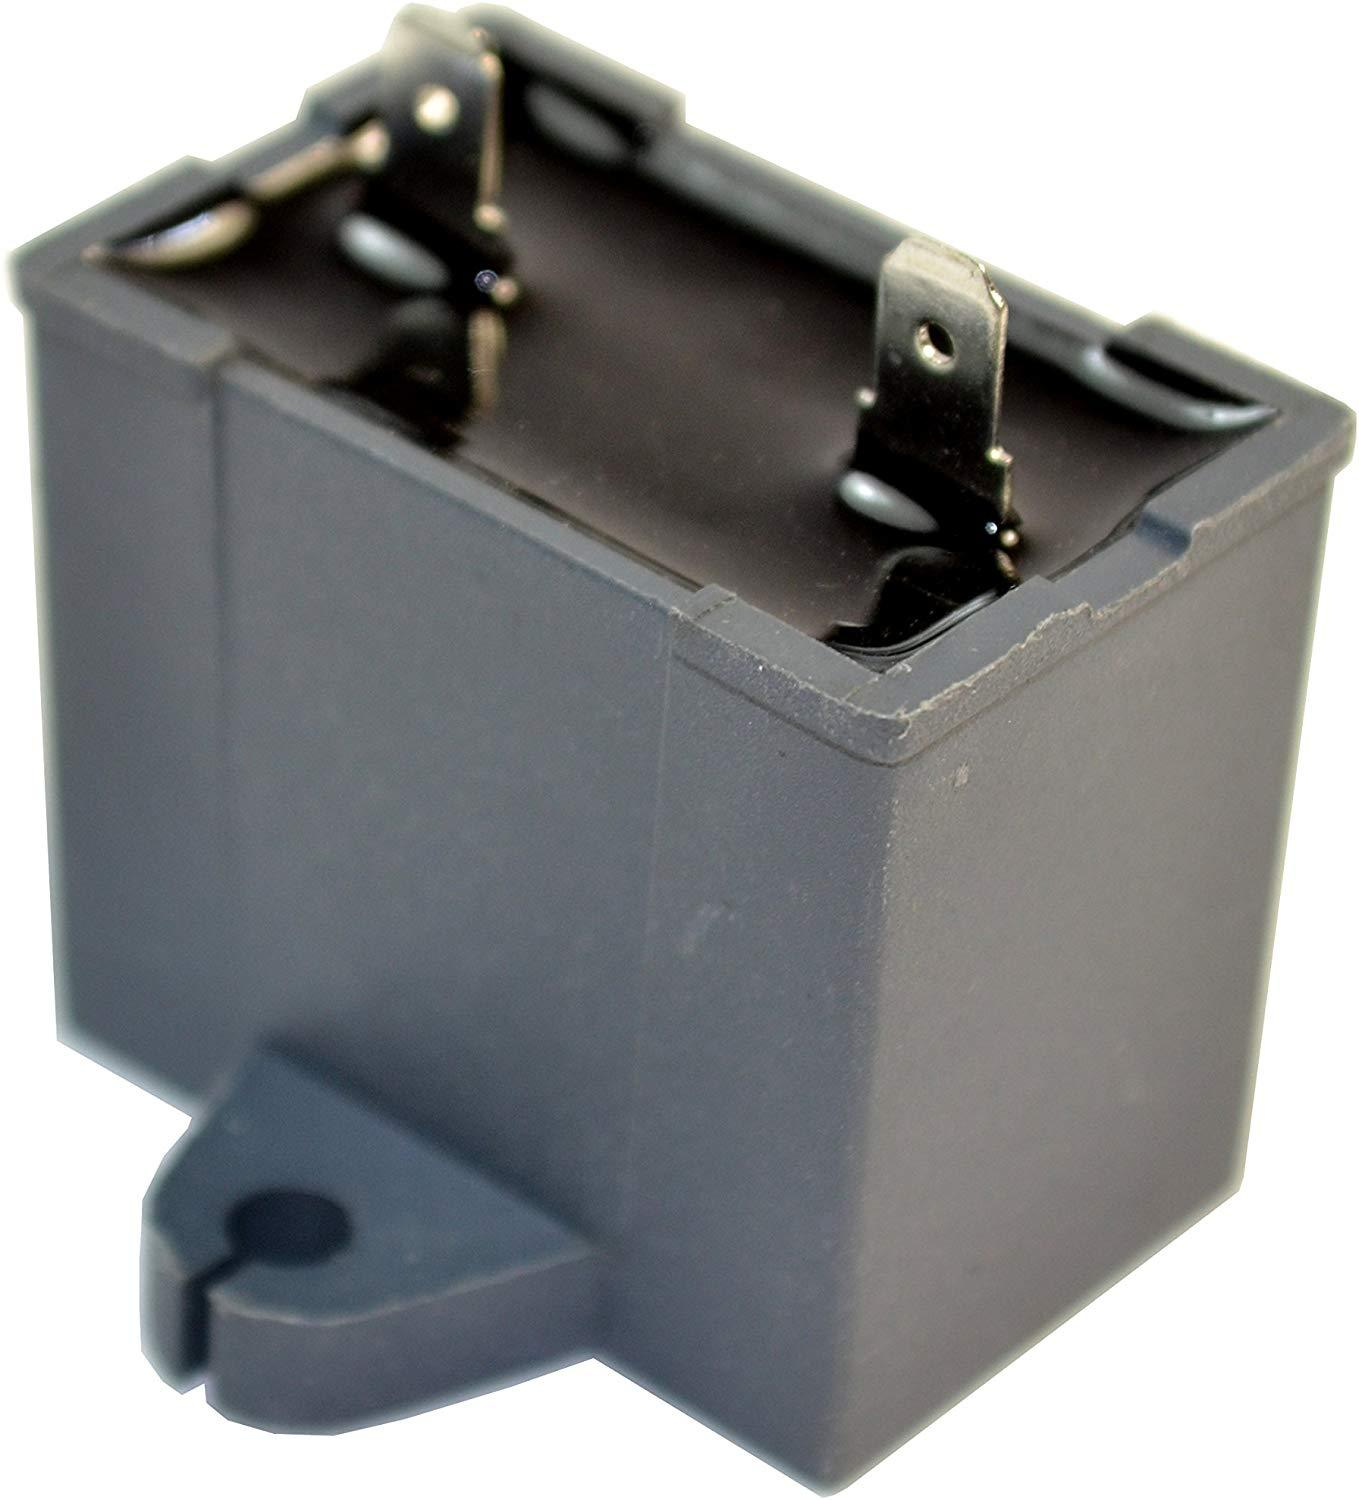 KitchenAid KSRY25CRMS00 Capacitor Compatible Replacement